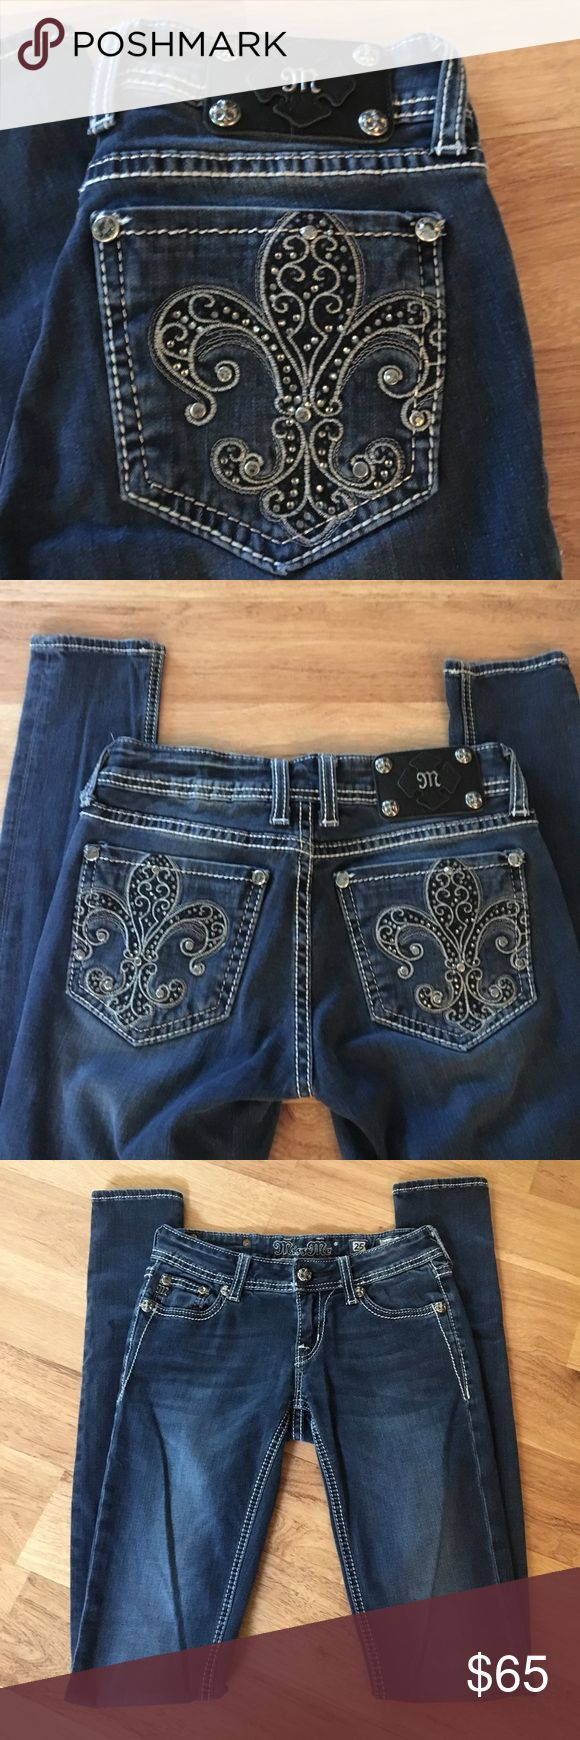 Brand new Miss Me Jeans✨ Brand new Miss Me Jeans✨perfect condition size 25 Jegging skinny jeans. Dark washed . Inseam 33 Miss Me Jeans Skinny